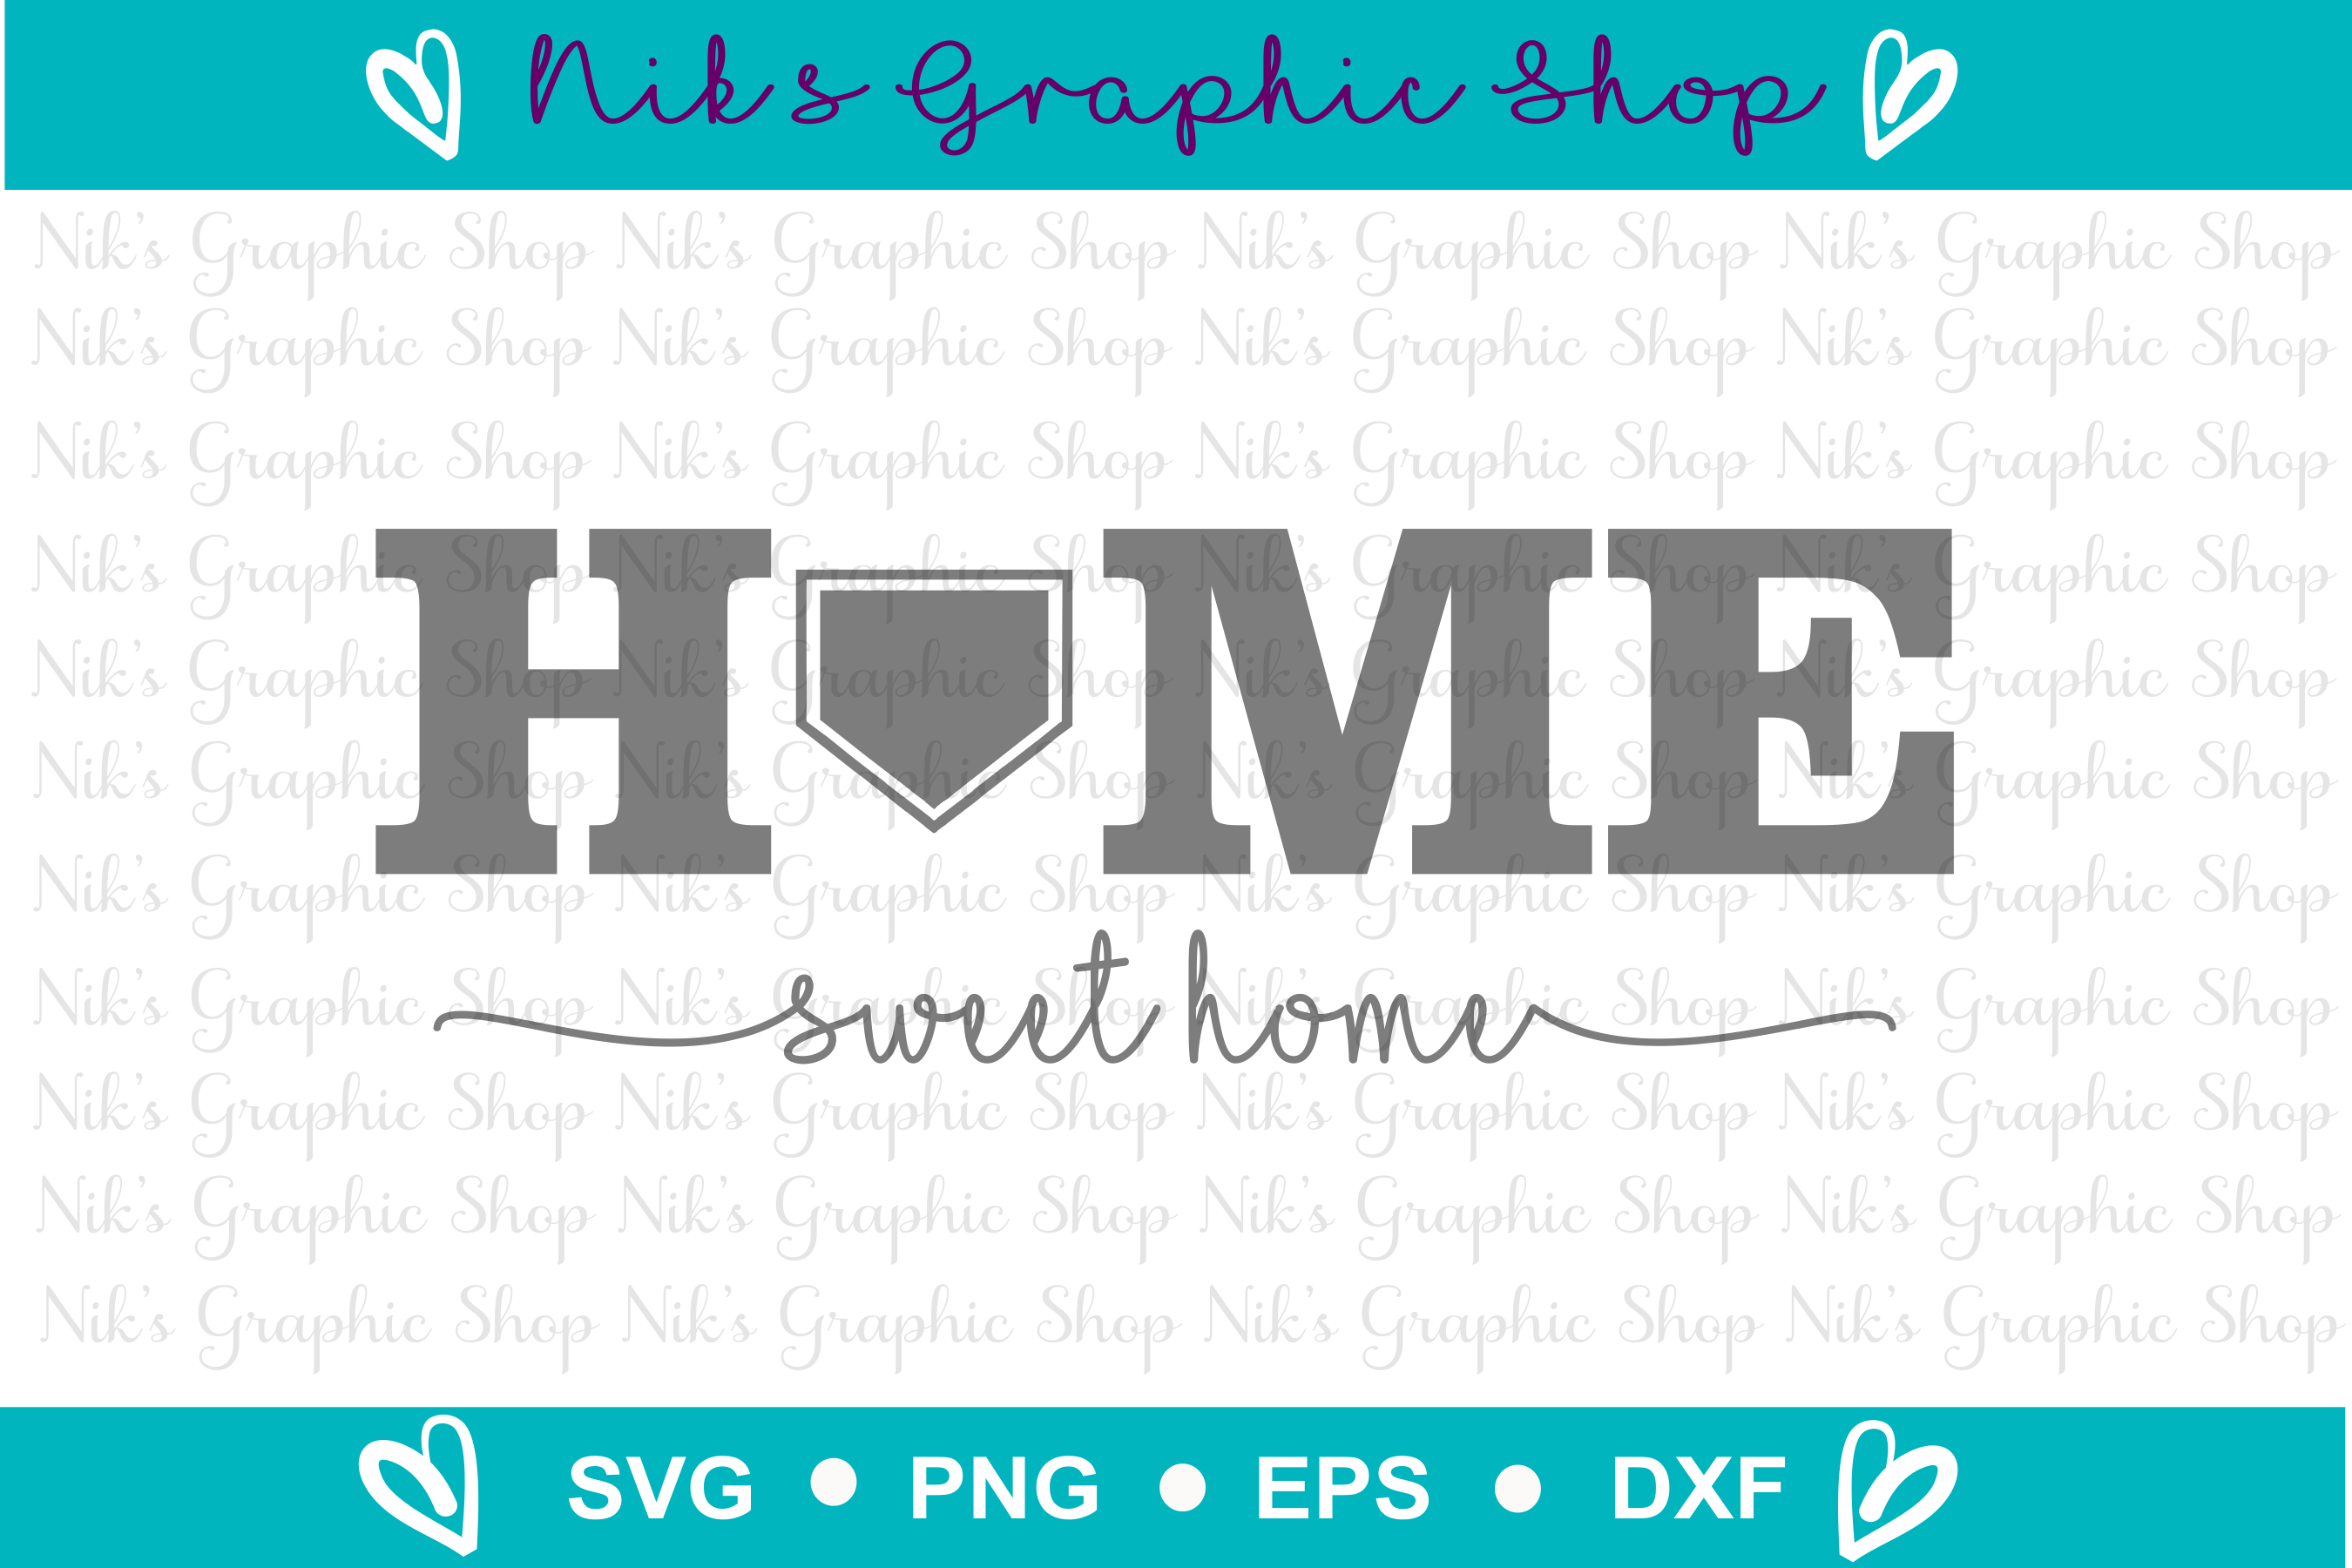 Baseball Svg, Home Sign Svg, Home Svg, Baseball Home Svg example image 5